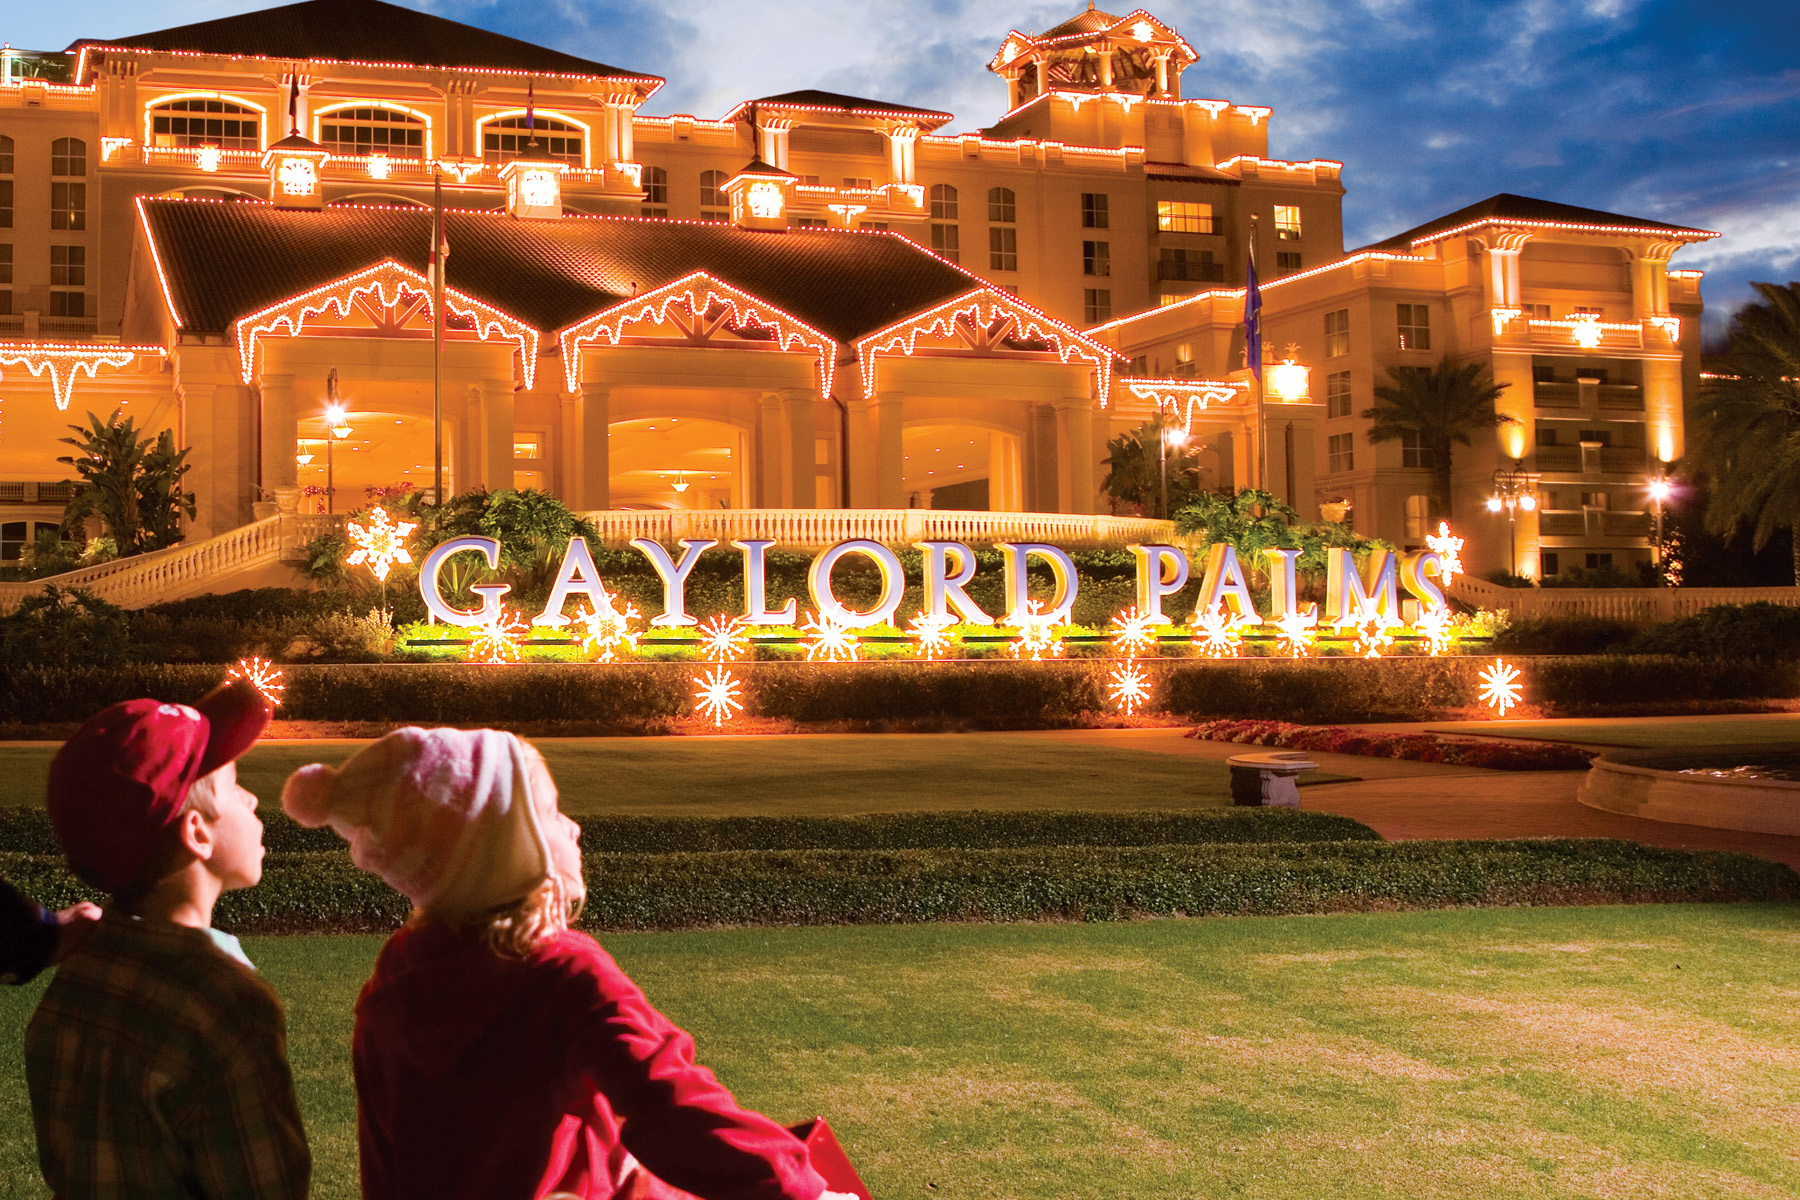 slides with grandpa opryland christmas lights at gaylord palms